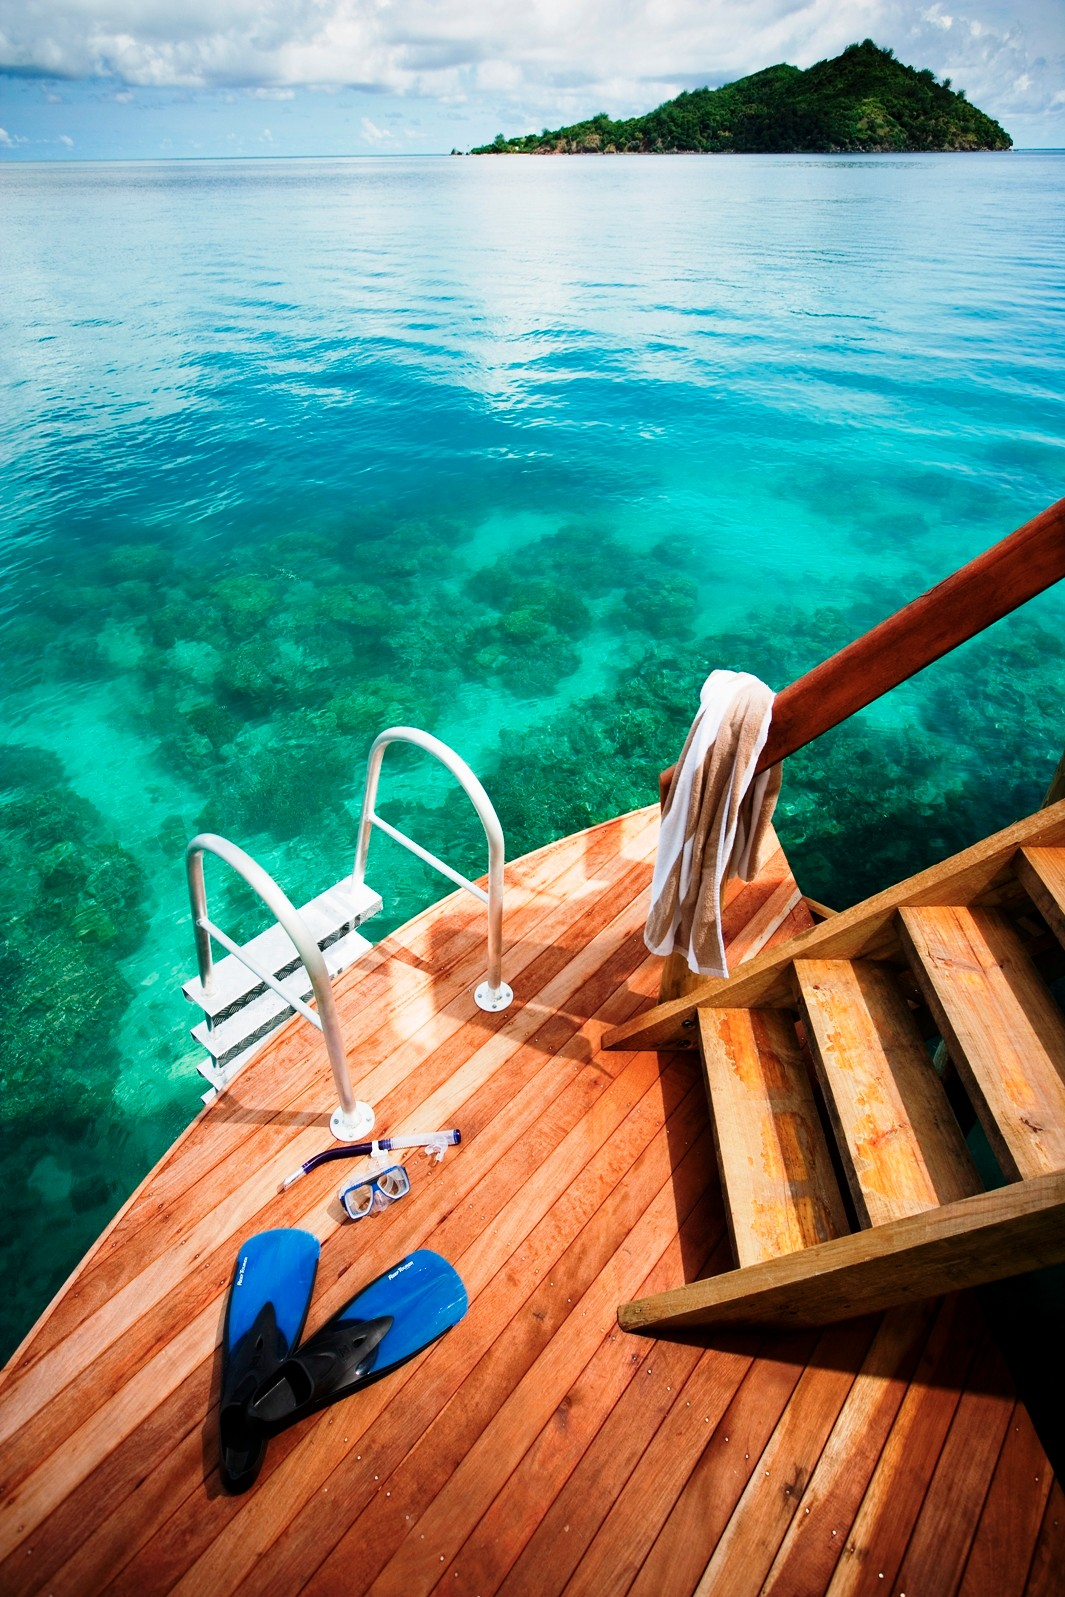 LLR-144-direct-snorkelling-access-from-over-water-bure.jpg